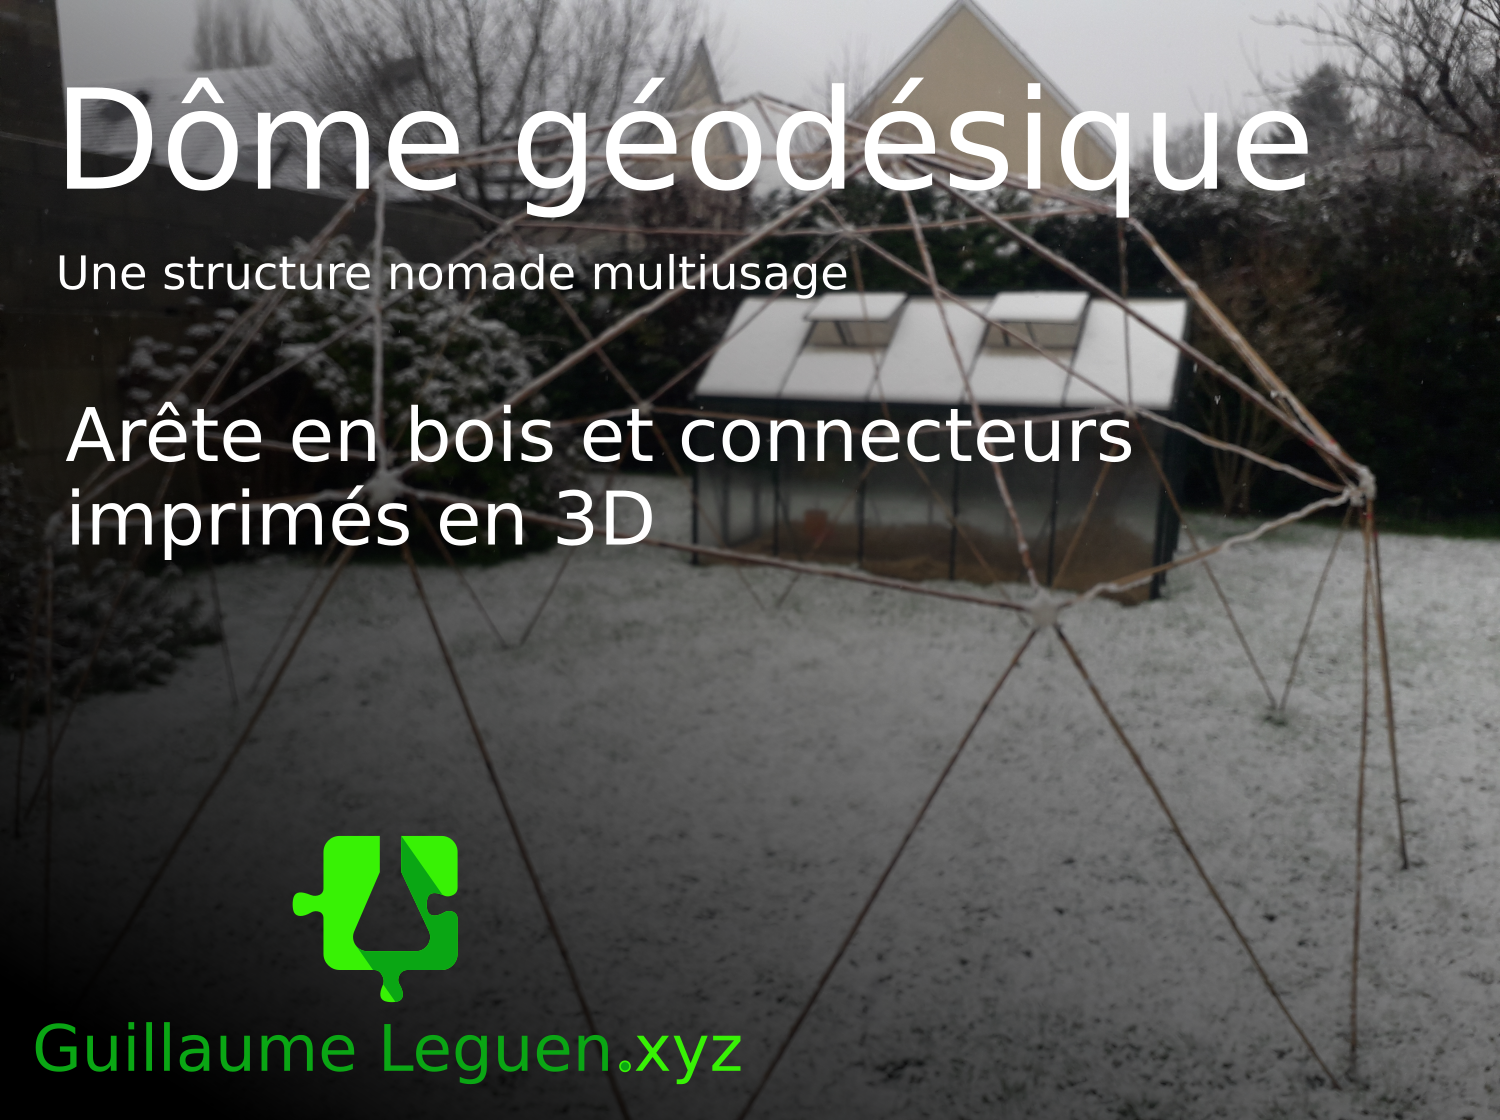 image Tuto_dome.png (1.9MB)